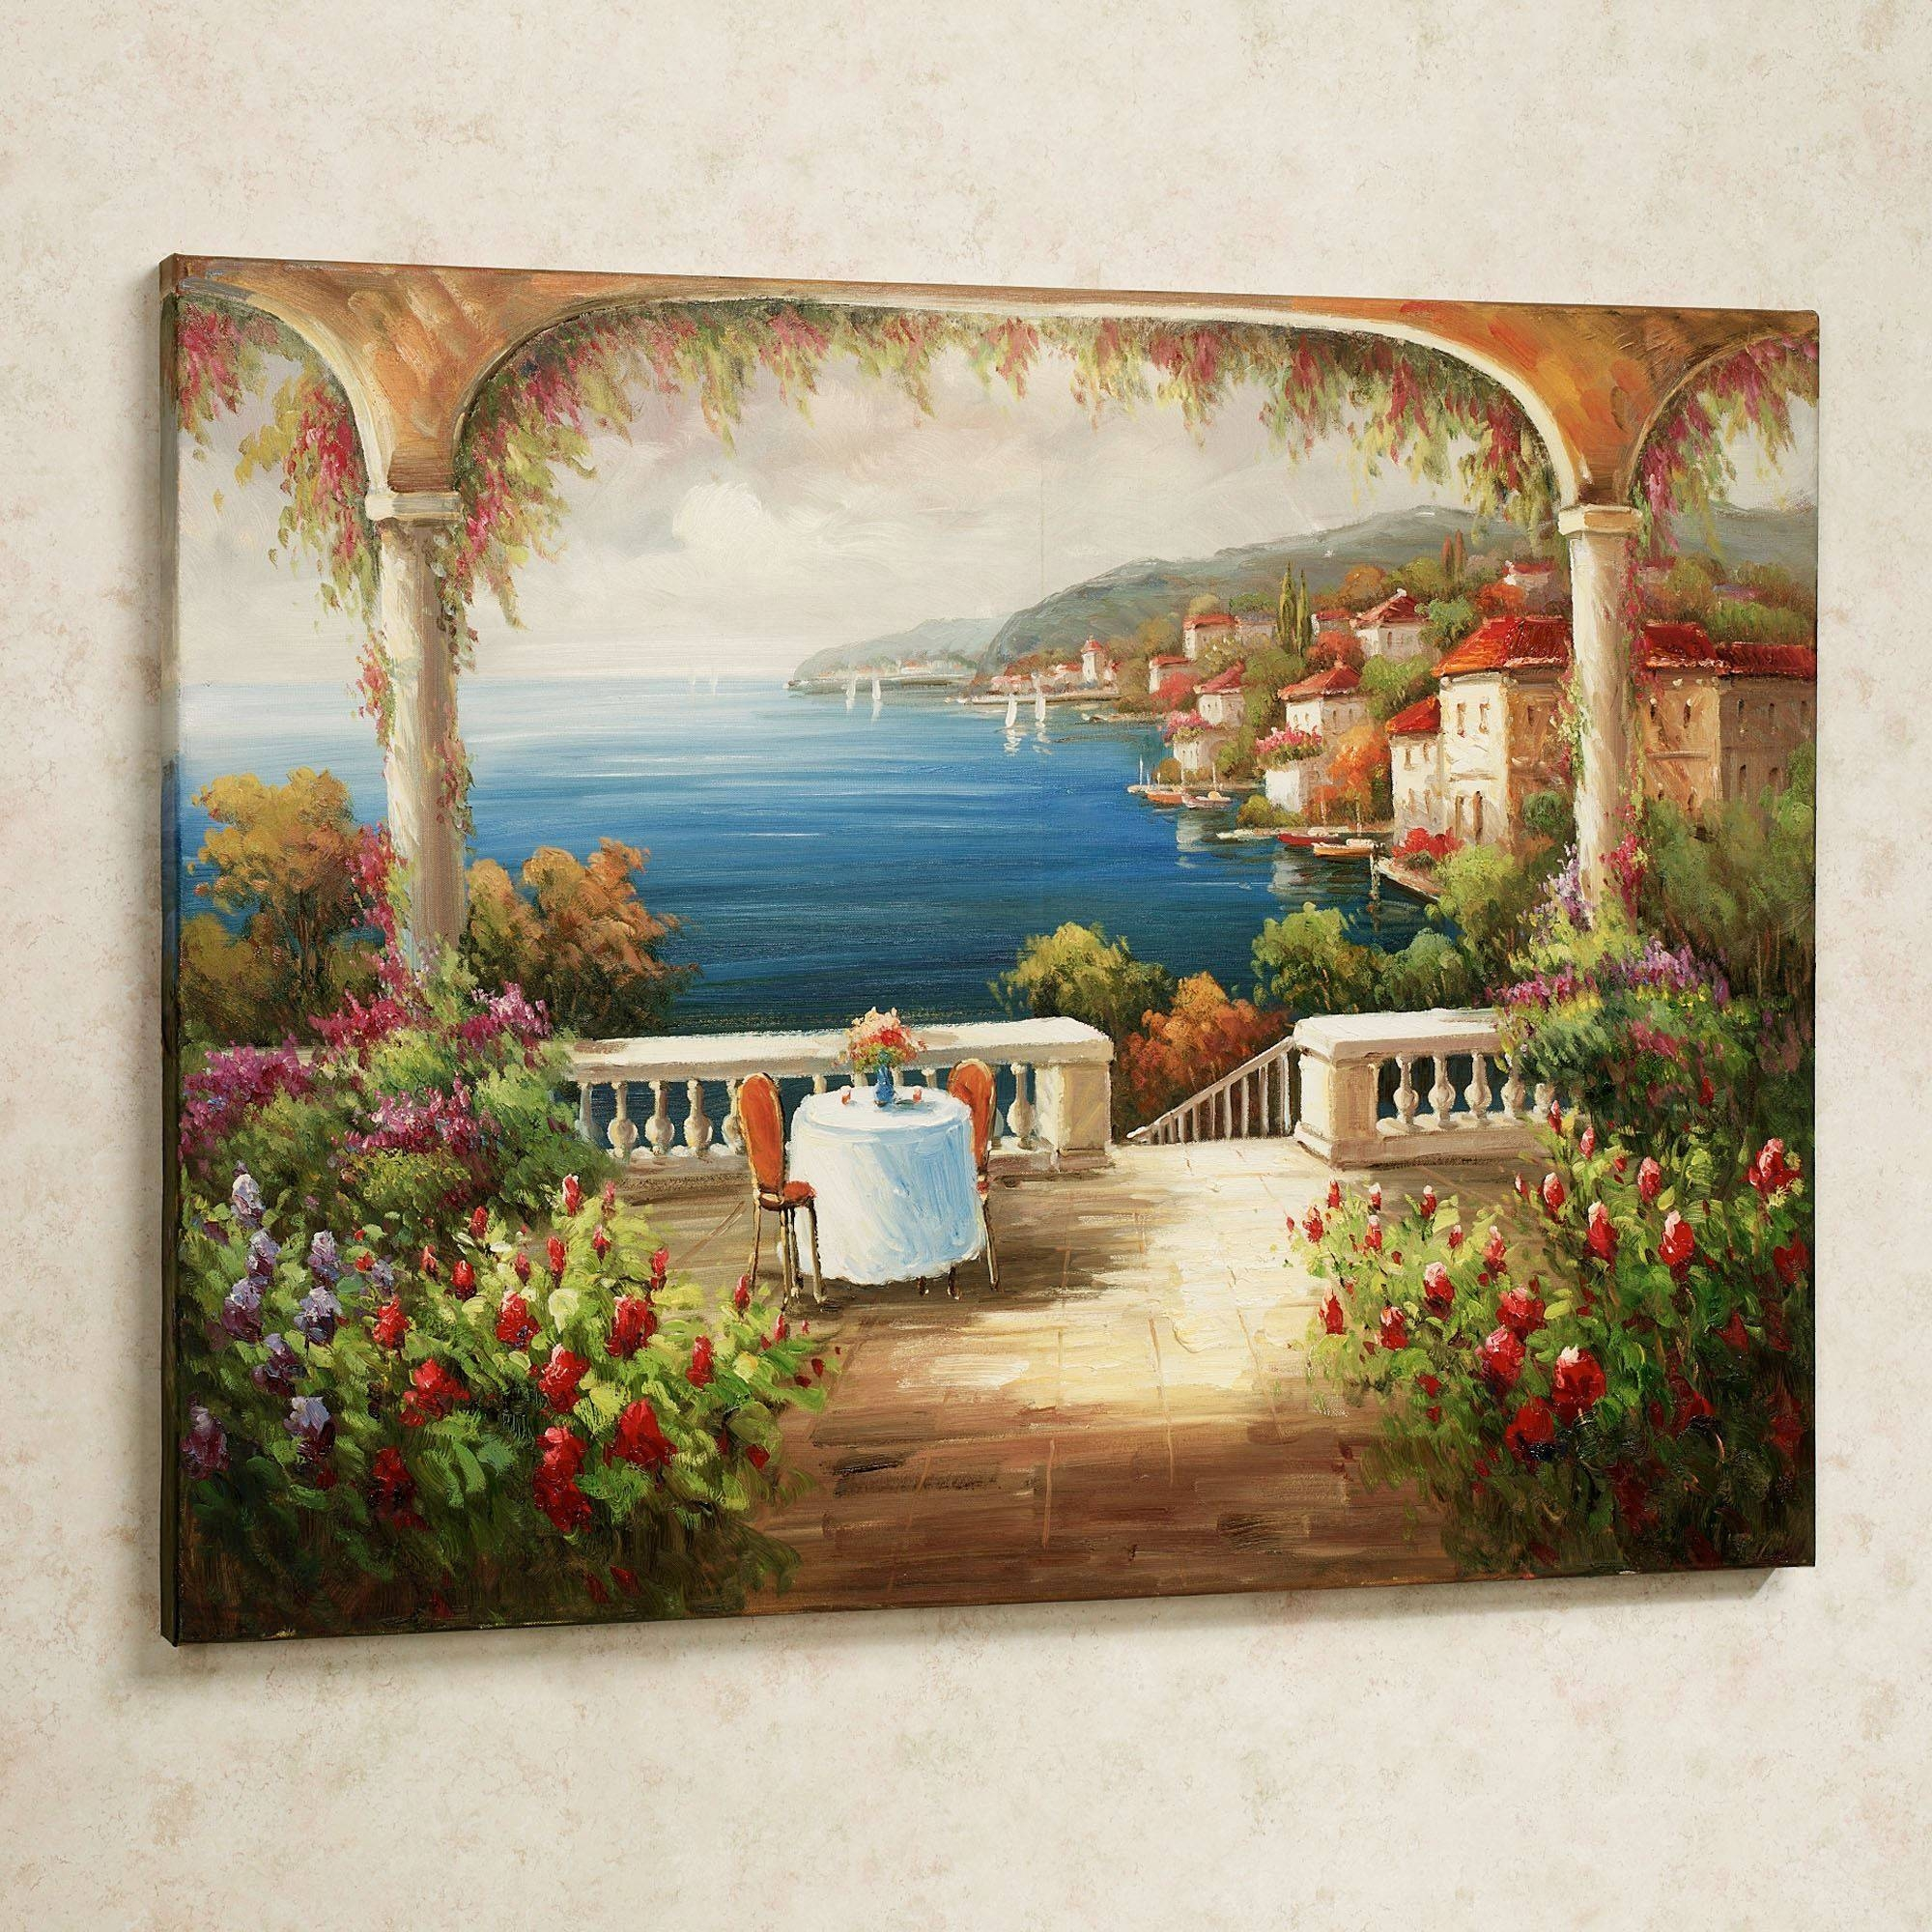 Kitchen : Large Artwork For Wall Wall Pictures For Living Room For Current Tuscany Wall Art (Gallery 15 of 20)